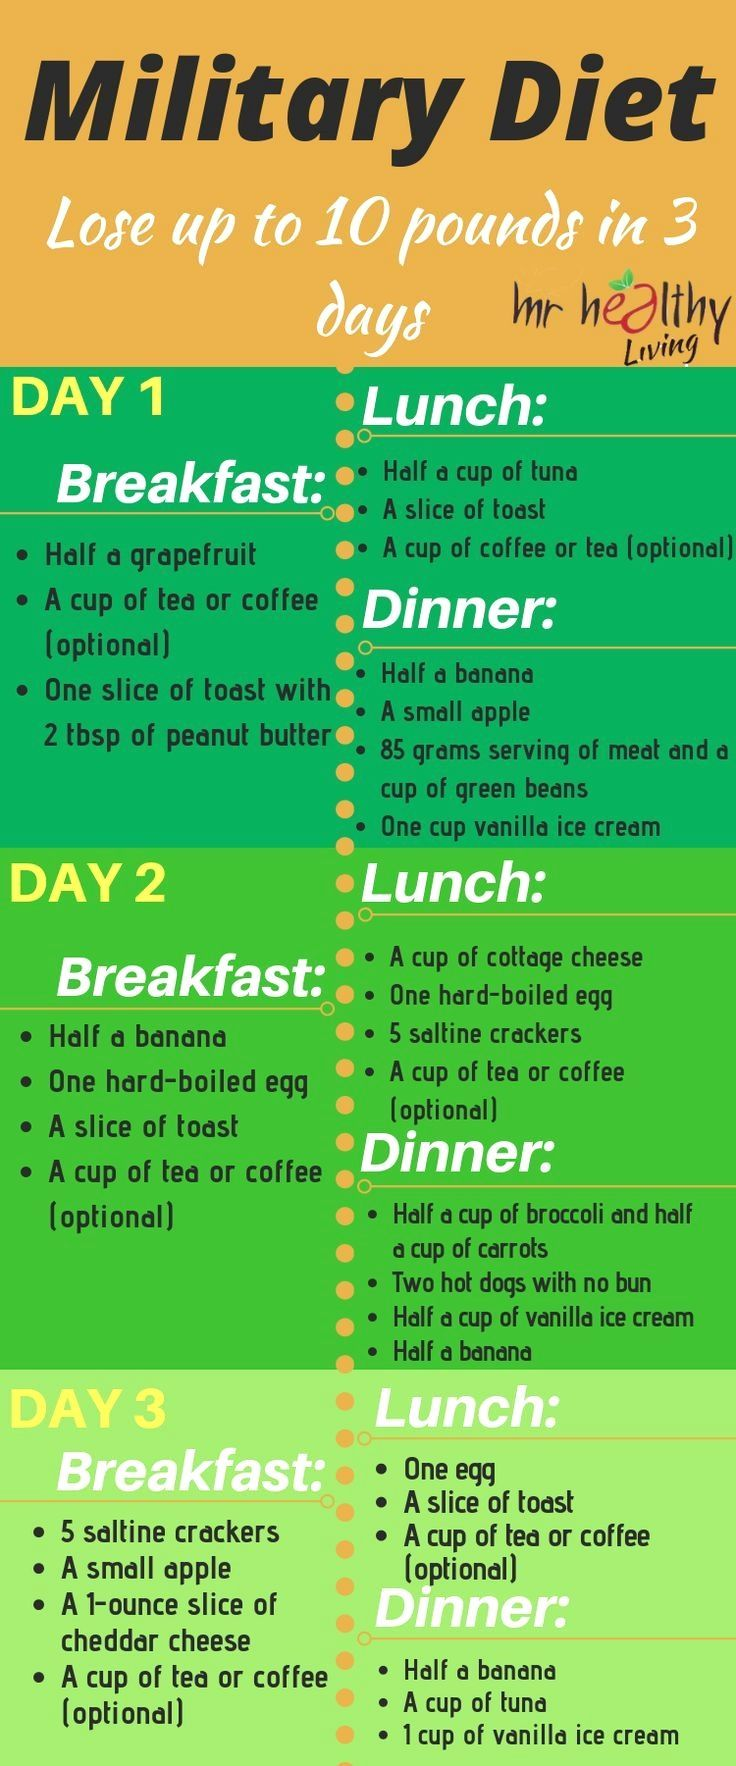 4 Day Diet Plans: The Military Diet, Also Known As The 3 Day Diet, Can Help